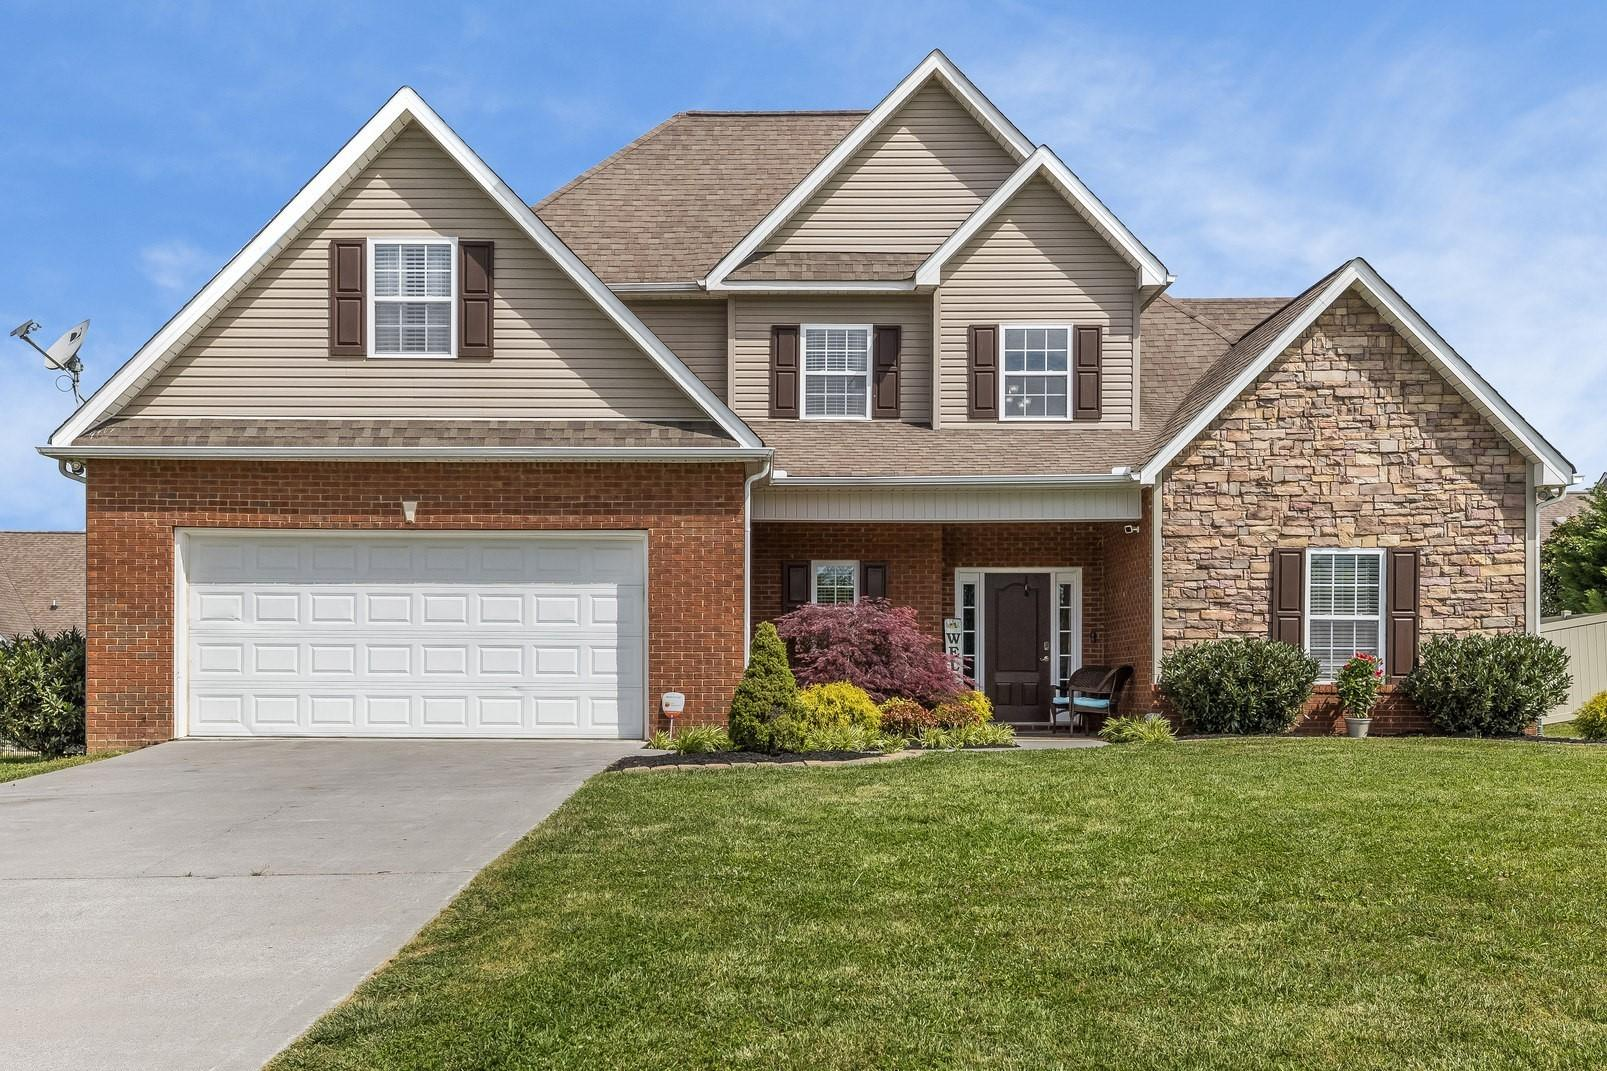 9321 Gabrielle Rd, Strawberry Plains, Tennessee 37871, 4 Bedrooms Bedrooms, ,2 BathroomsBathrooms,Single Family,For Sale,Gabrielle,1117229